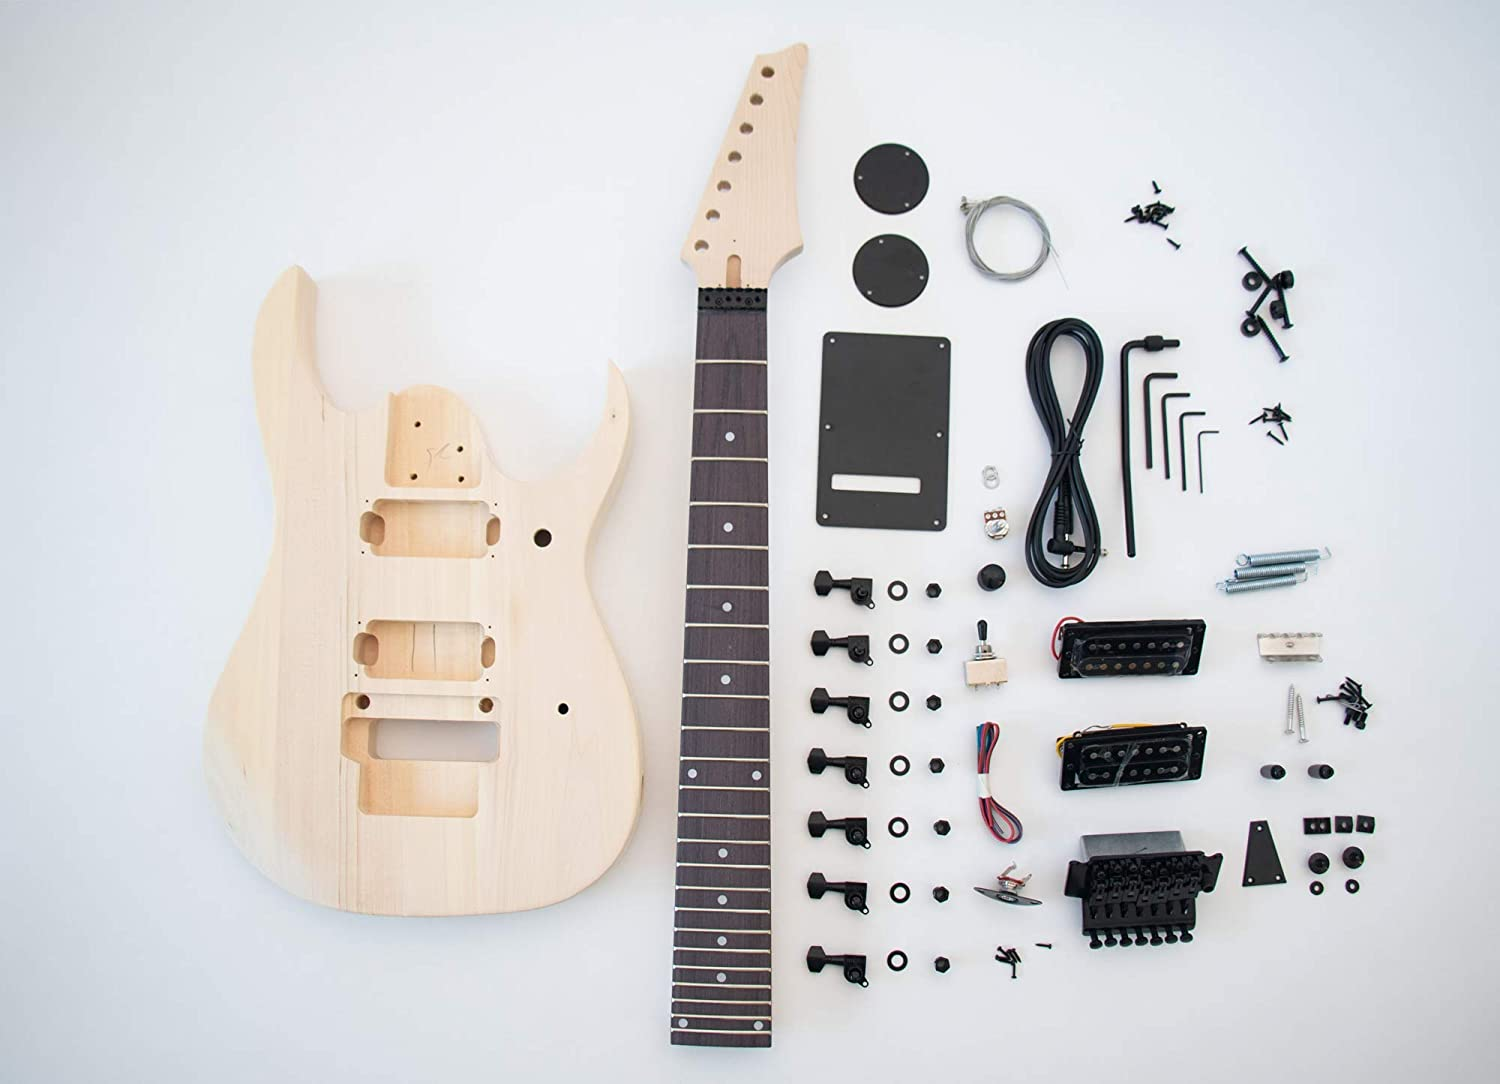 Amazon.com: DIY Electric Guitar Kit - 7 string Build Your Own ...